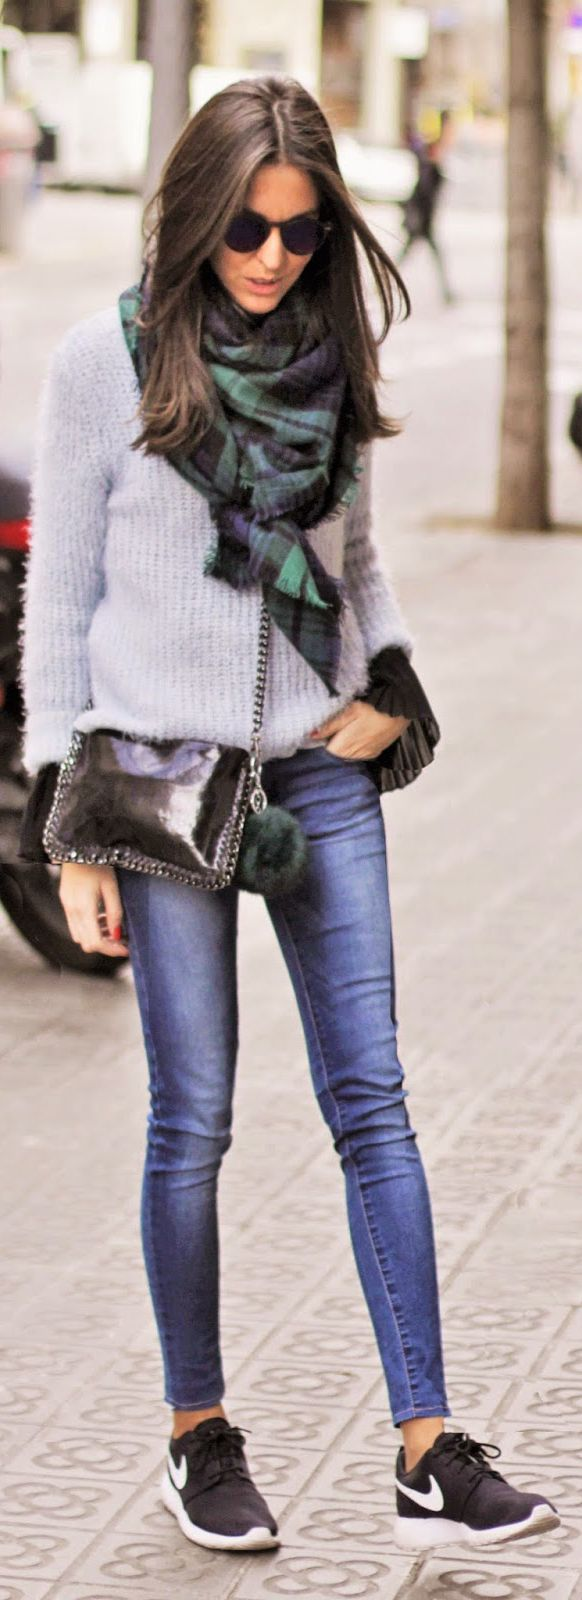 Street Style: Sandra Buisan is wearing a blue and green oversized scarf from 080 Chic: